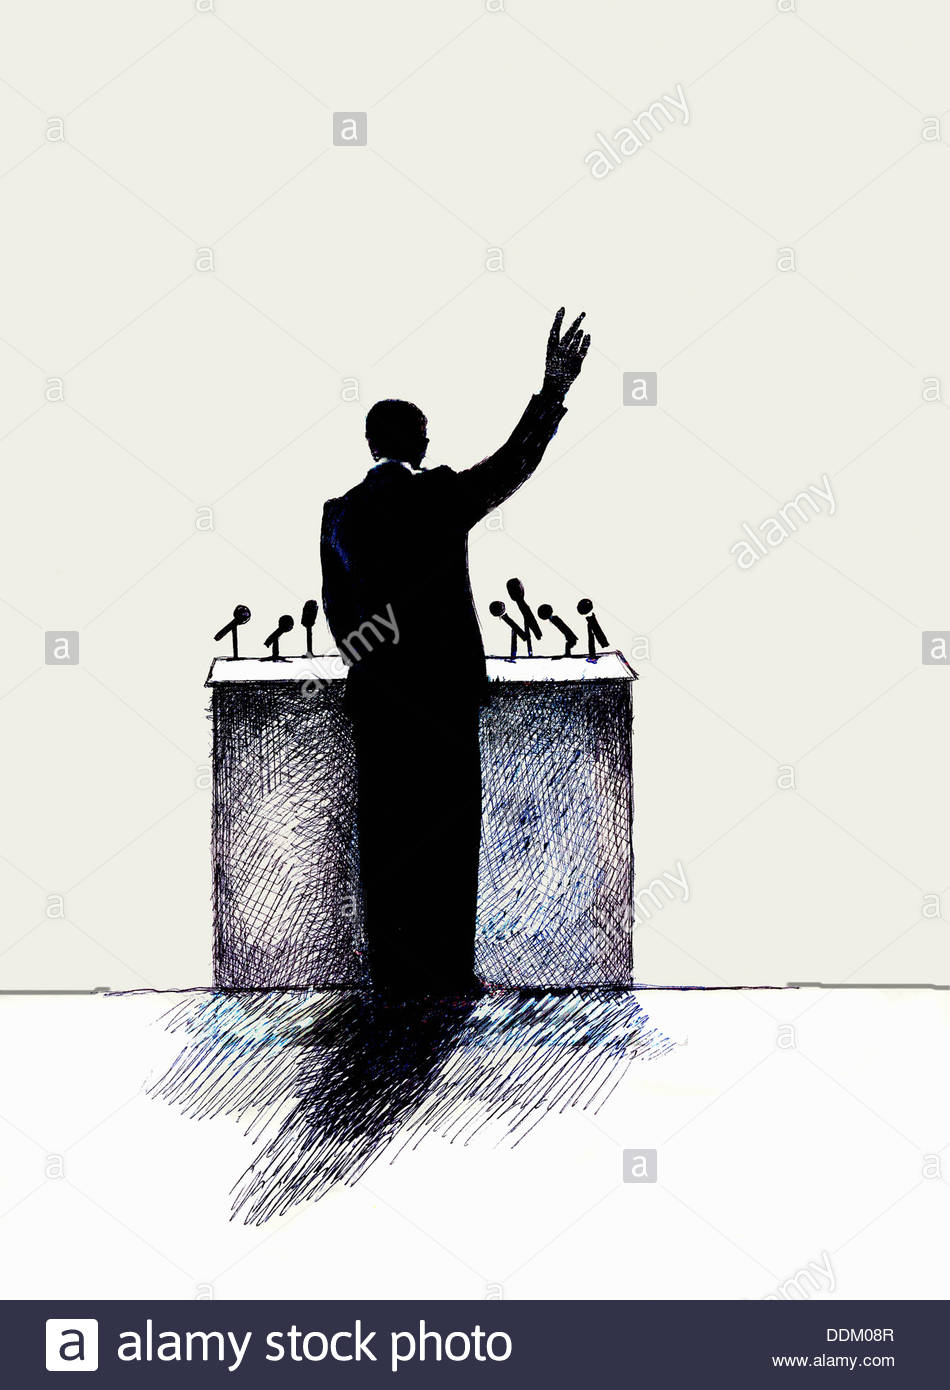 Rear view of man public speaking at podium - Stock Image